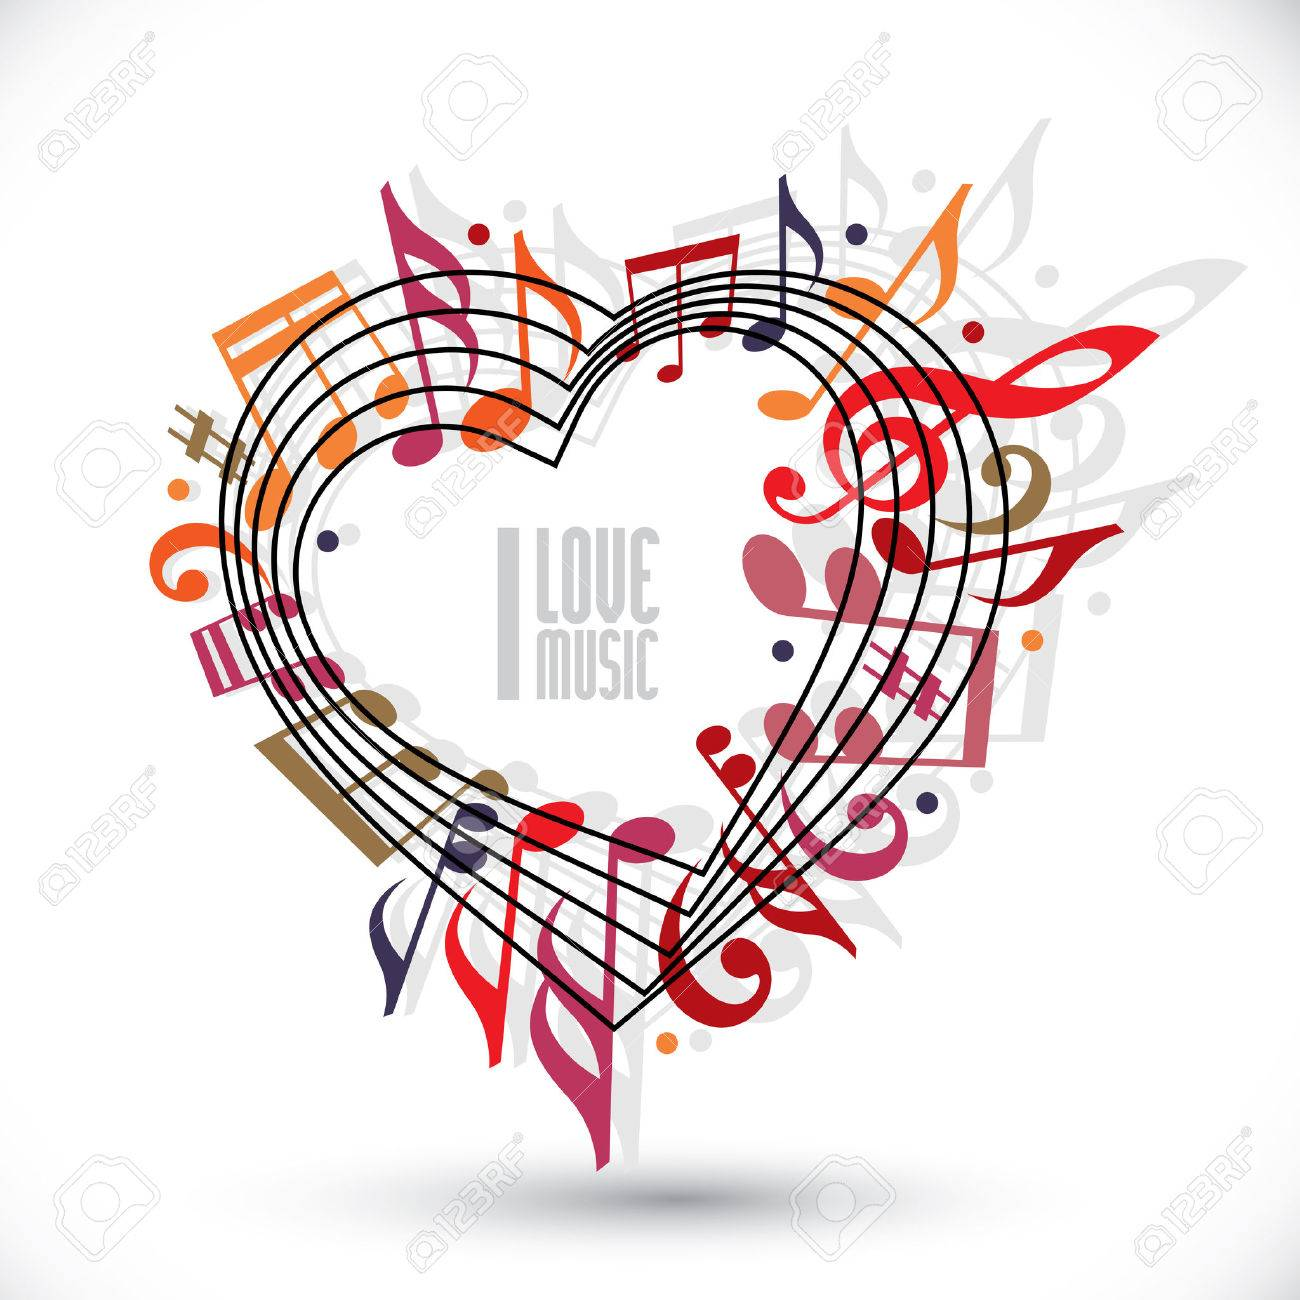 I love music, heart made with musical notes and clef Stock Vector - 30254268